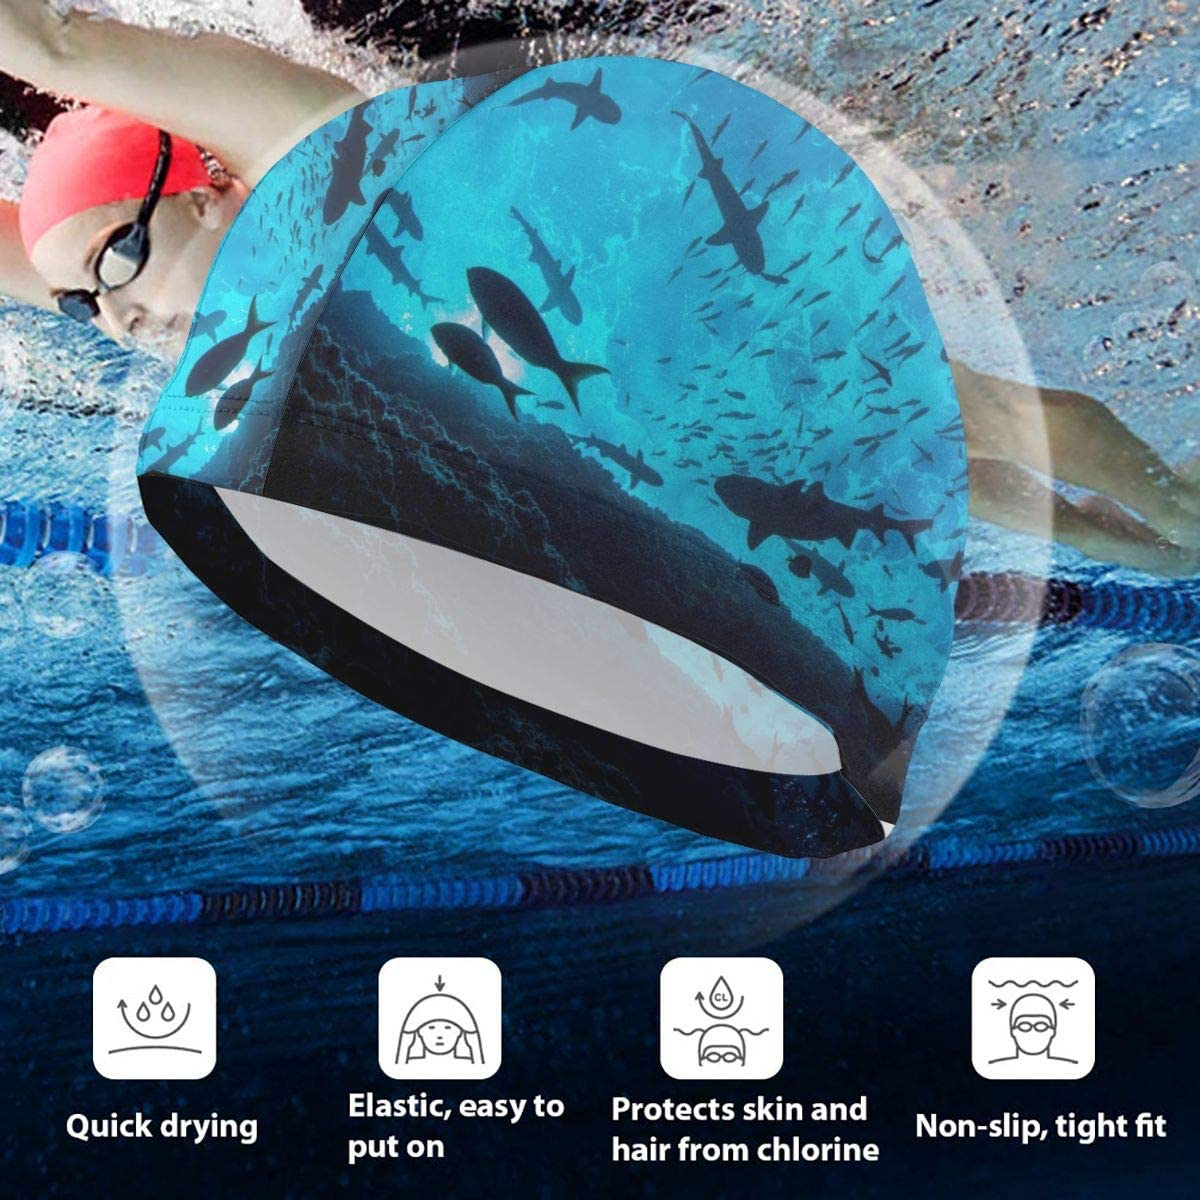 QILI Black and White Orca Whales Mens Quick Dry Water Resistant Hawaiian Funny Beach Board Shorts